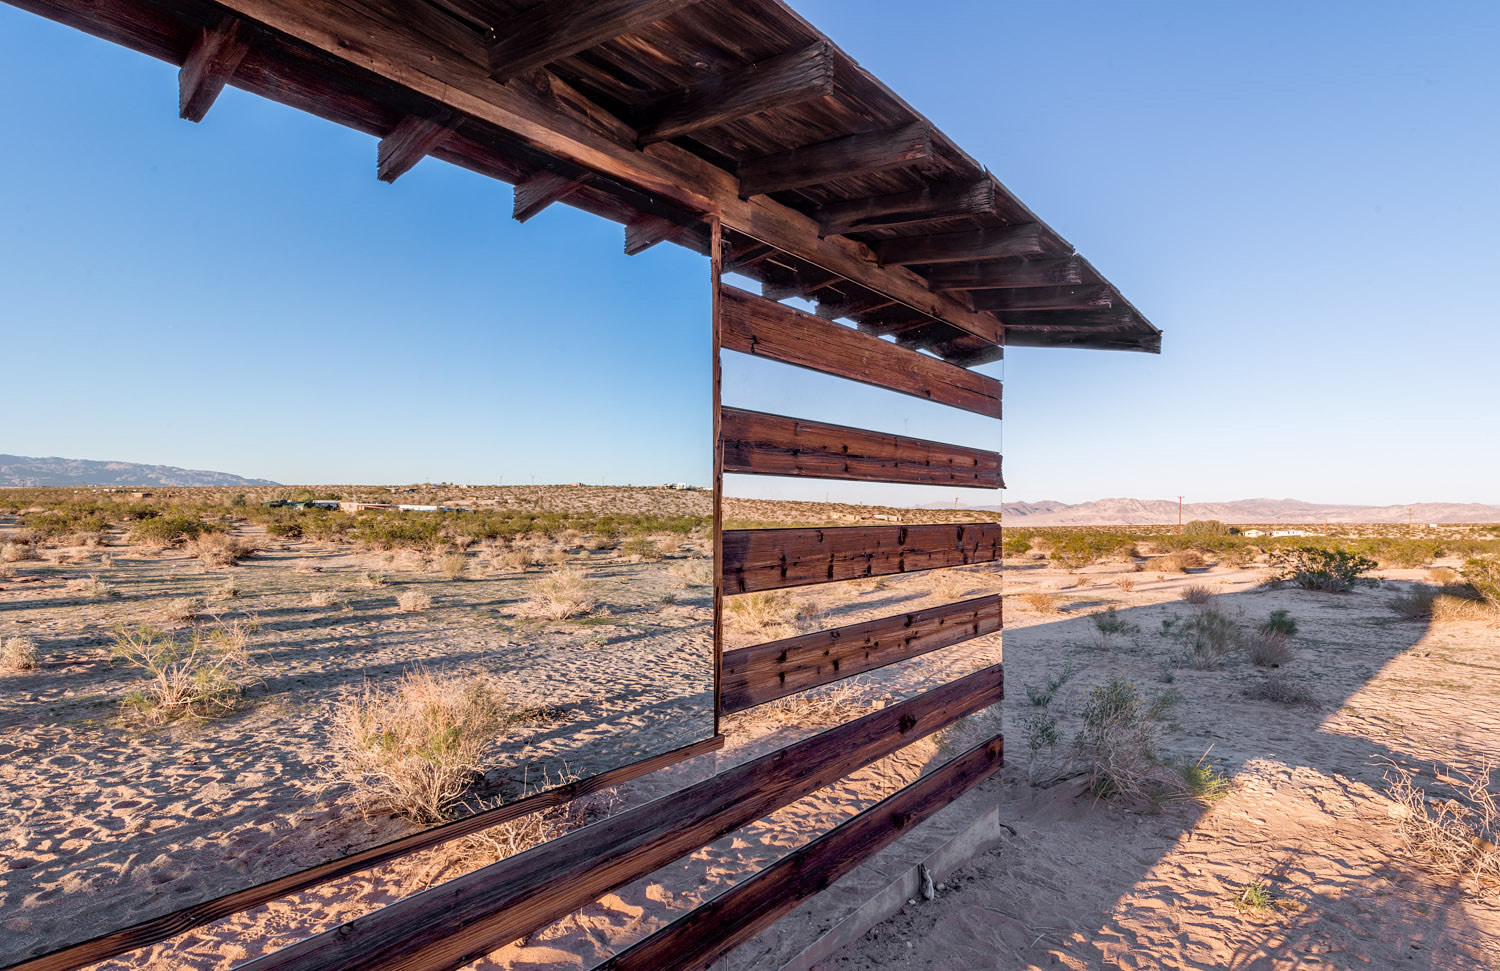 The See-through Cabin in the Desert